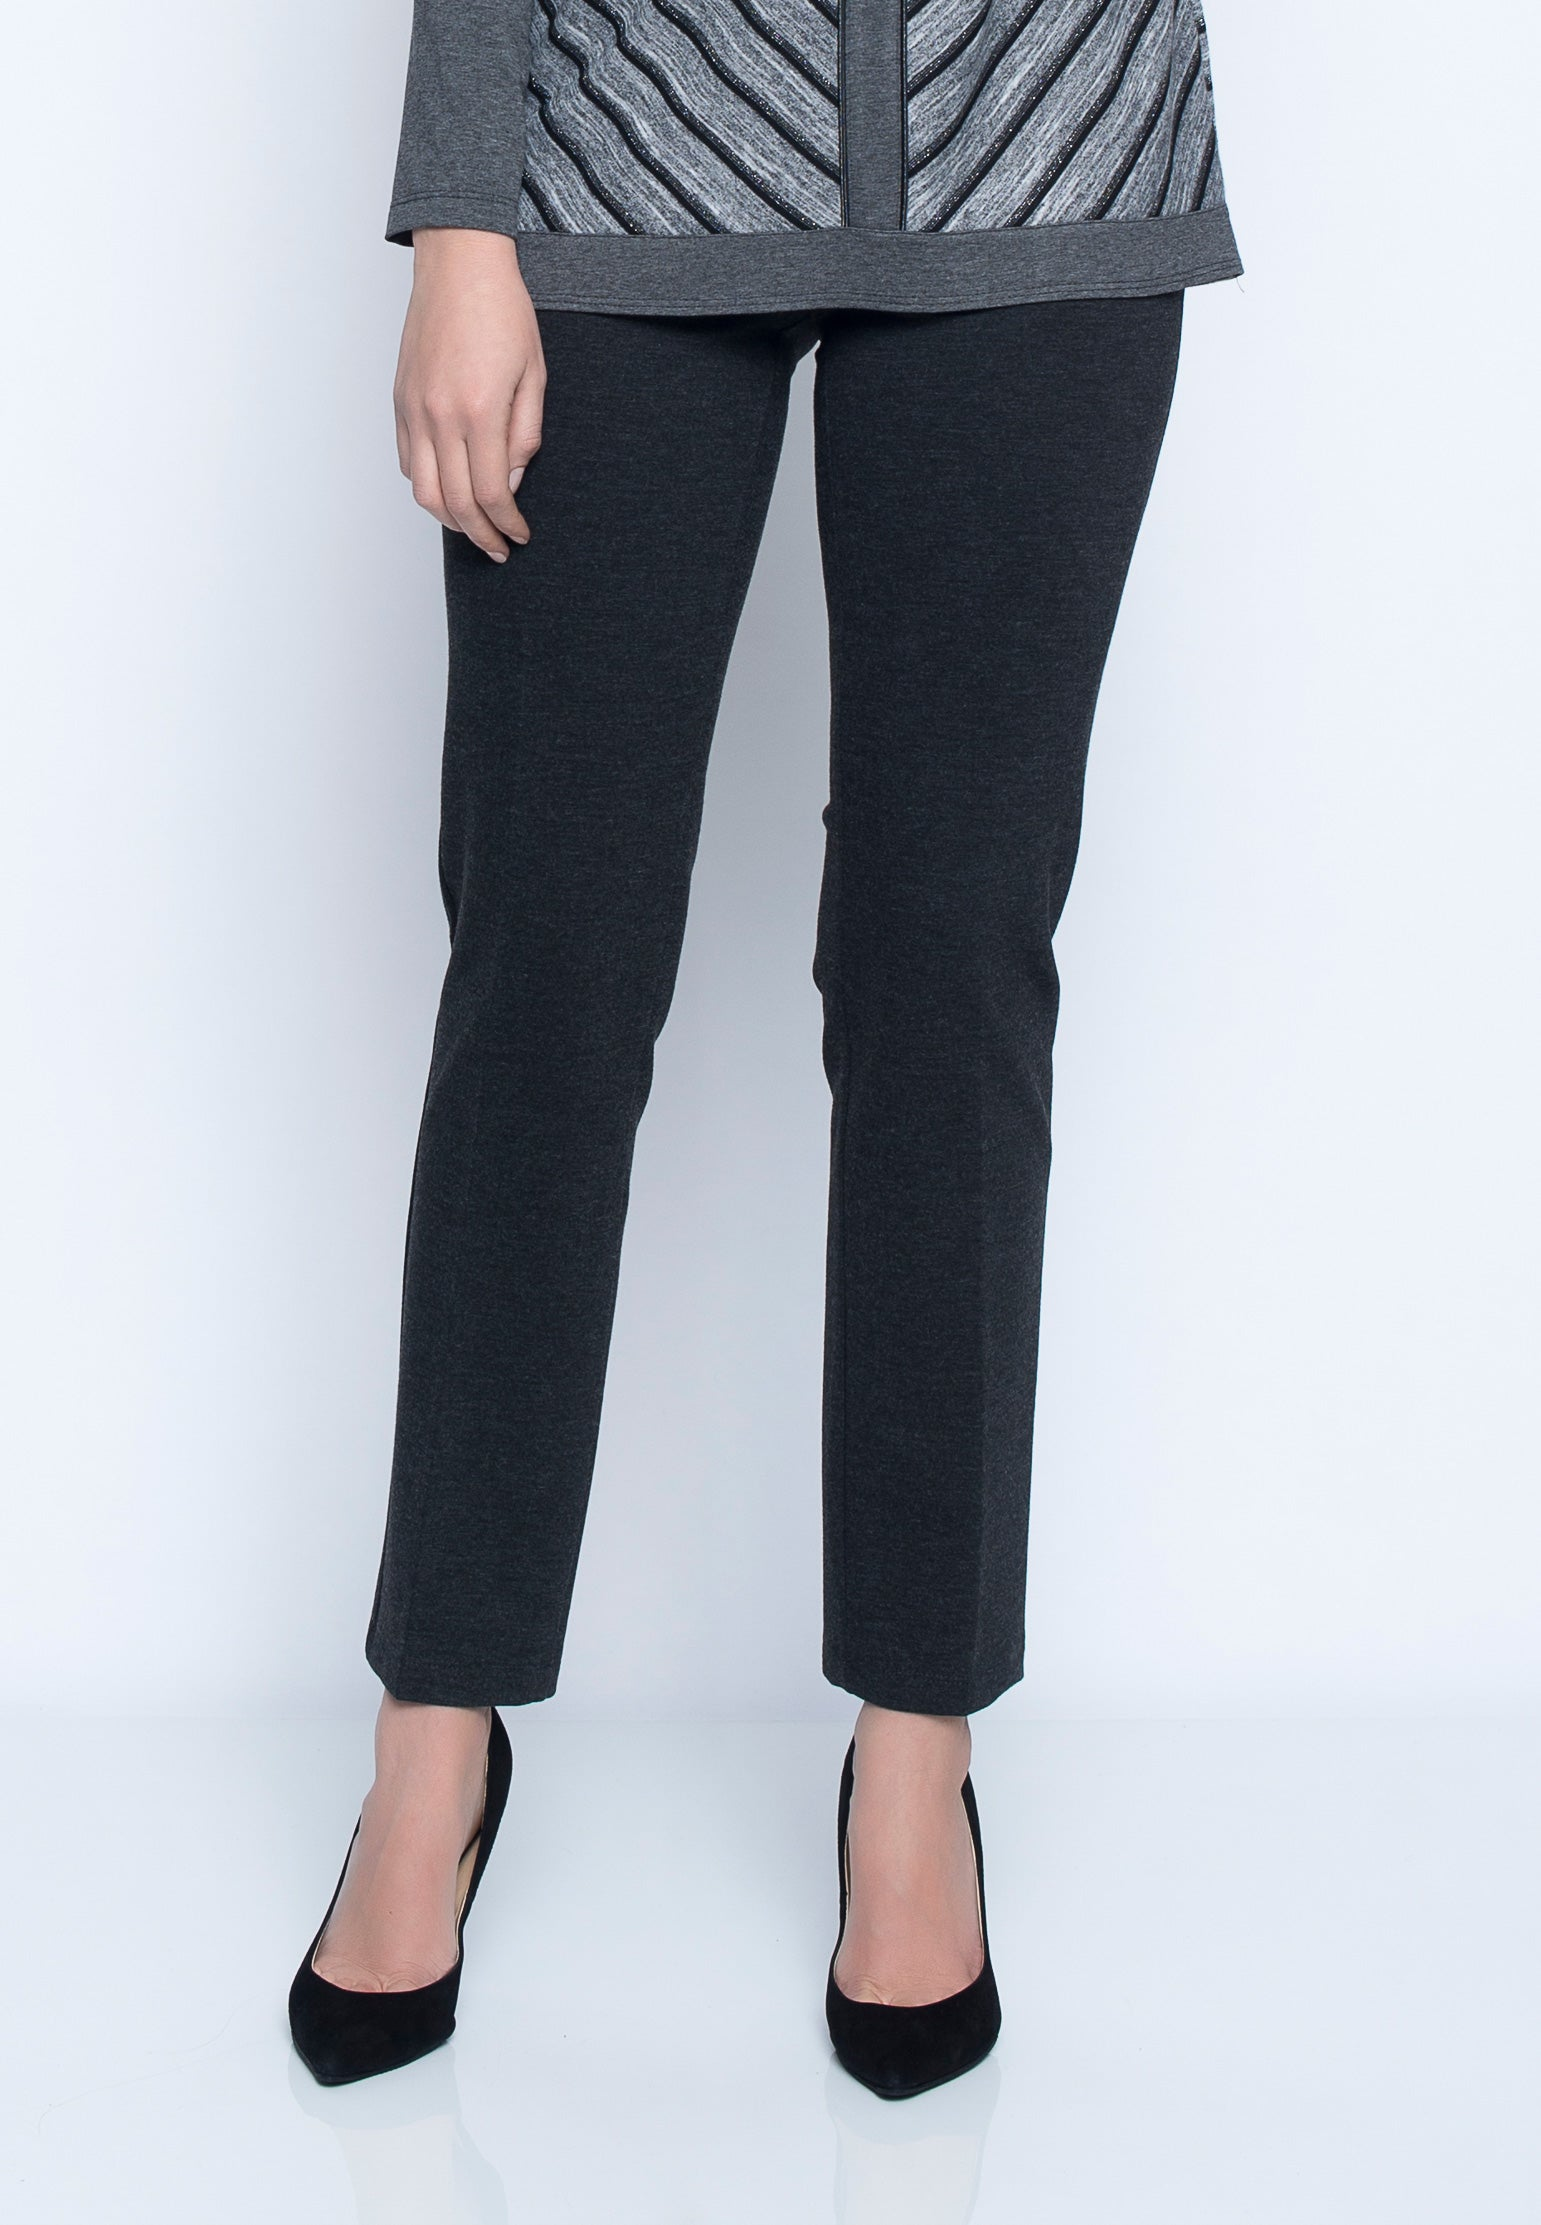 PICADILLY CANADA PULL ON  PANT 1G976-101 BLACK